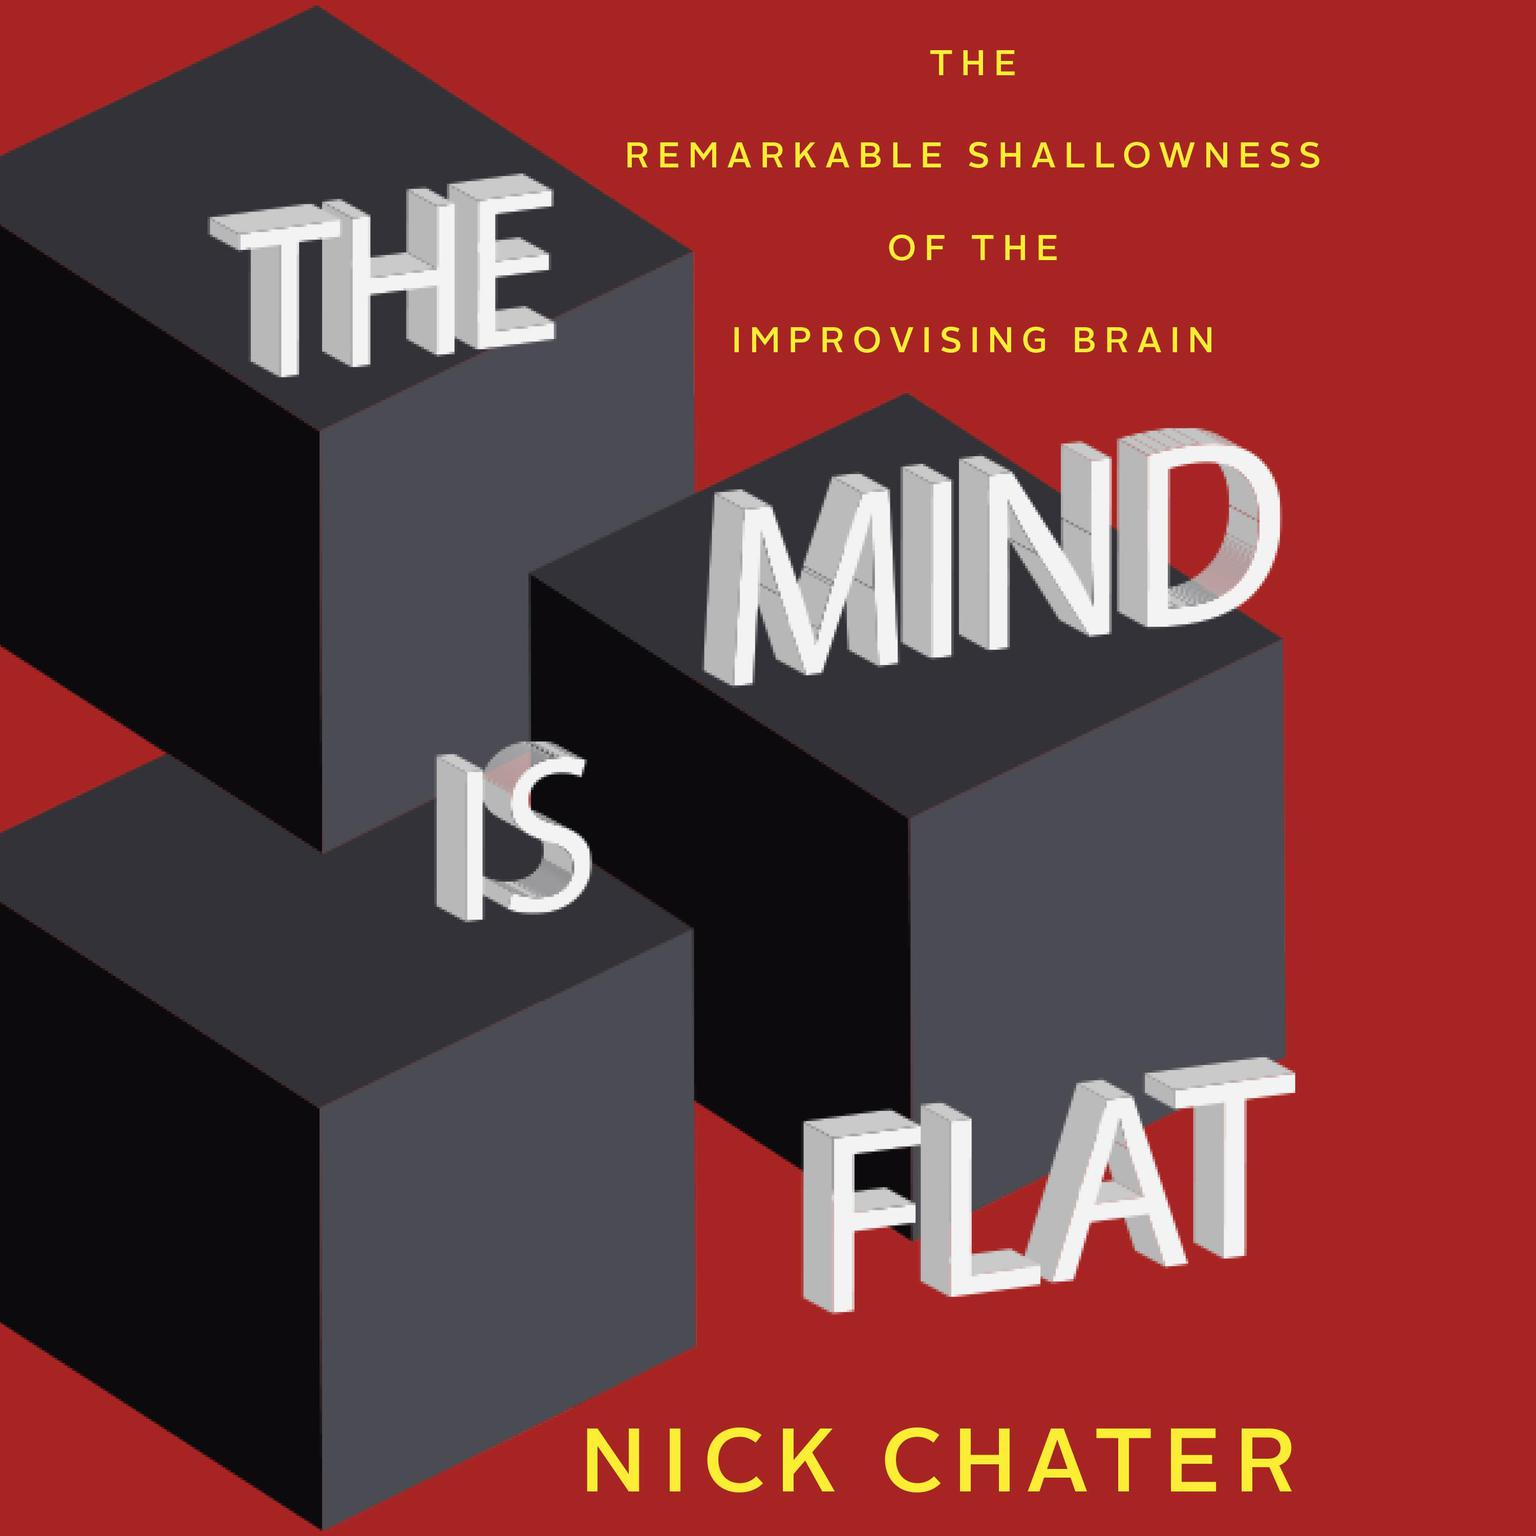 Printable The Mind Is Flat: The Remarkable Shallowness of the Improvising Brain Audiobook Cover Art